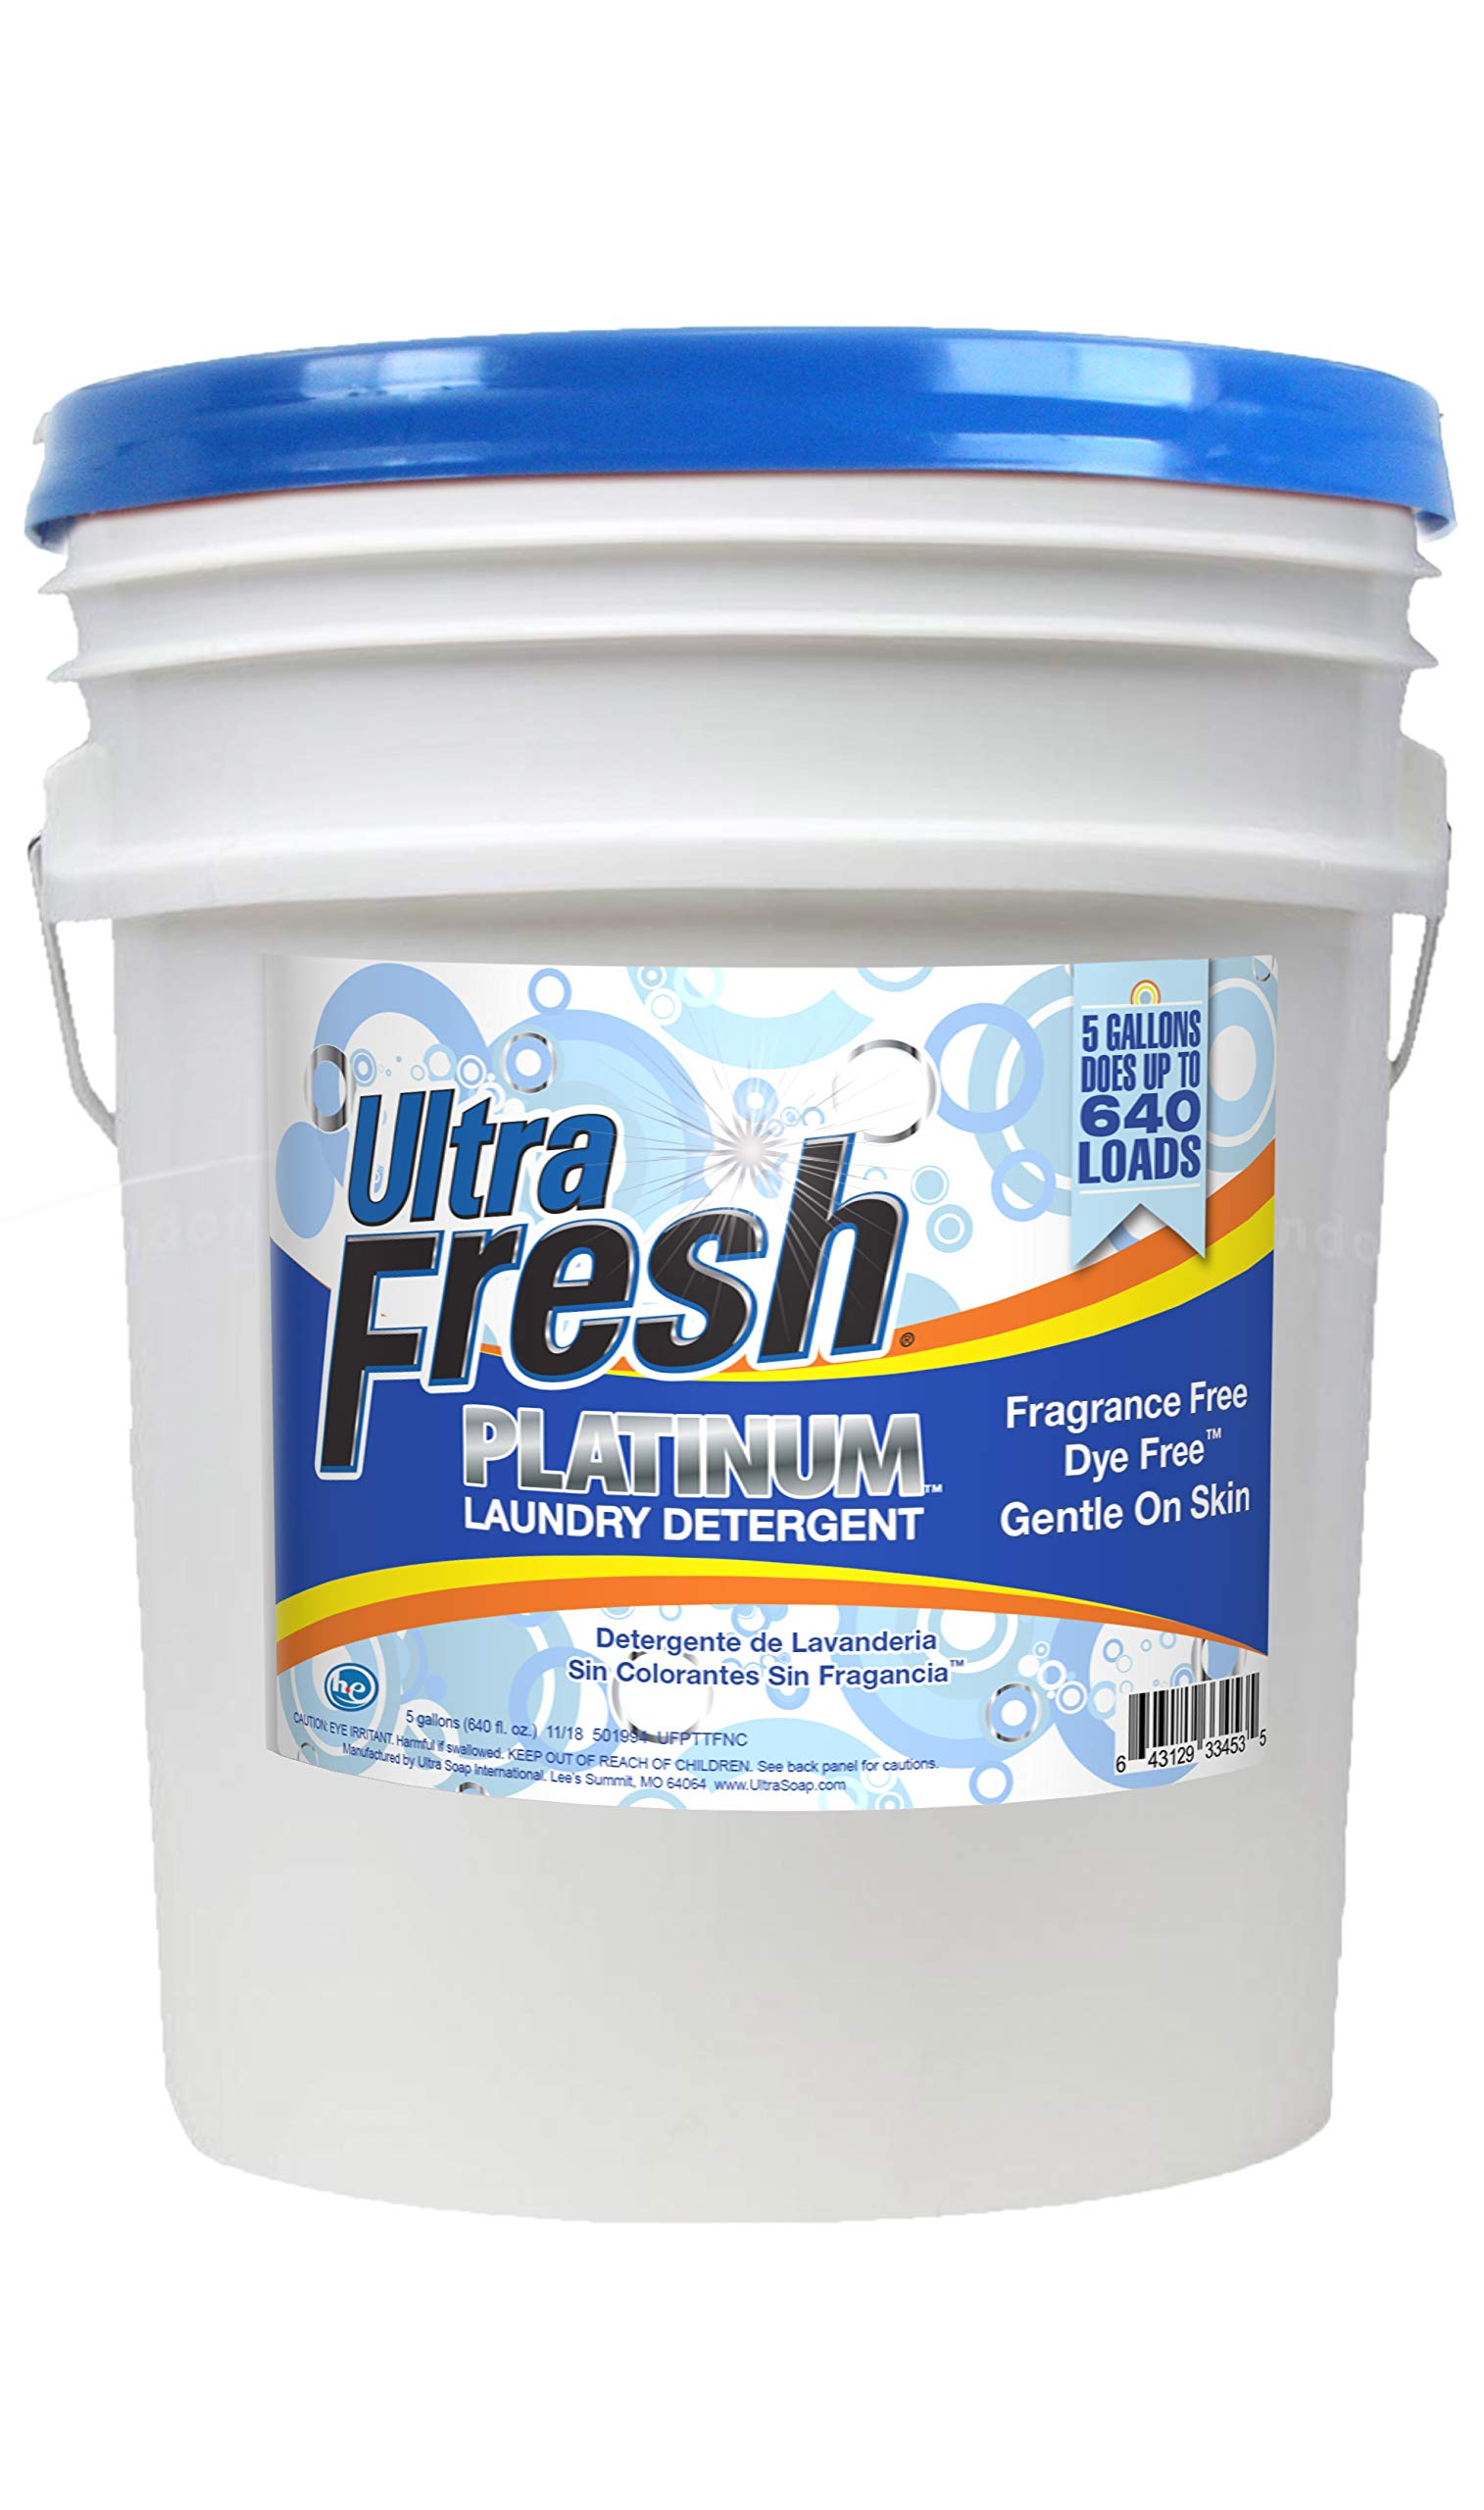 Ultra Fresh UFPTTFNC Platinum Fragrance Free and Dye Free Liquid Laundry Detergent, 5 gal, 640 oz. by Ultra Fresh